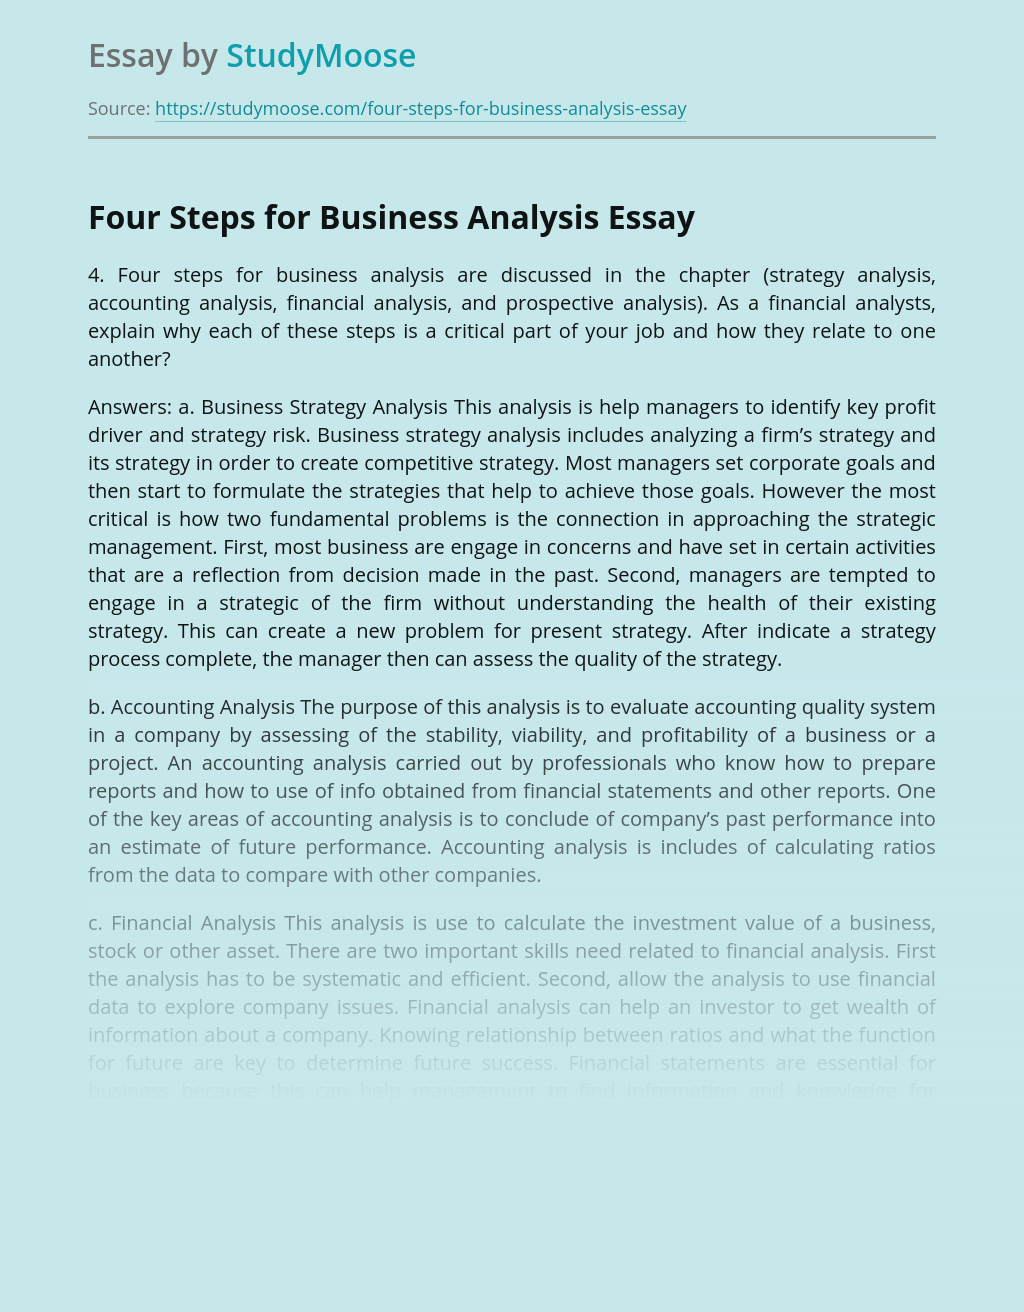 Four Steps for Business Analysis